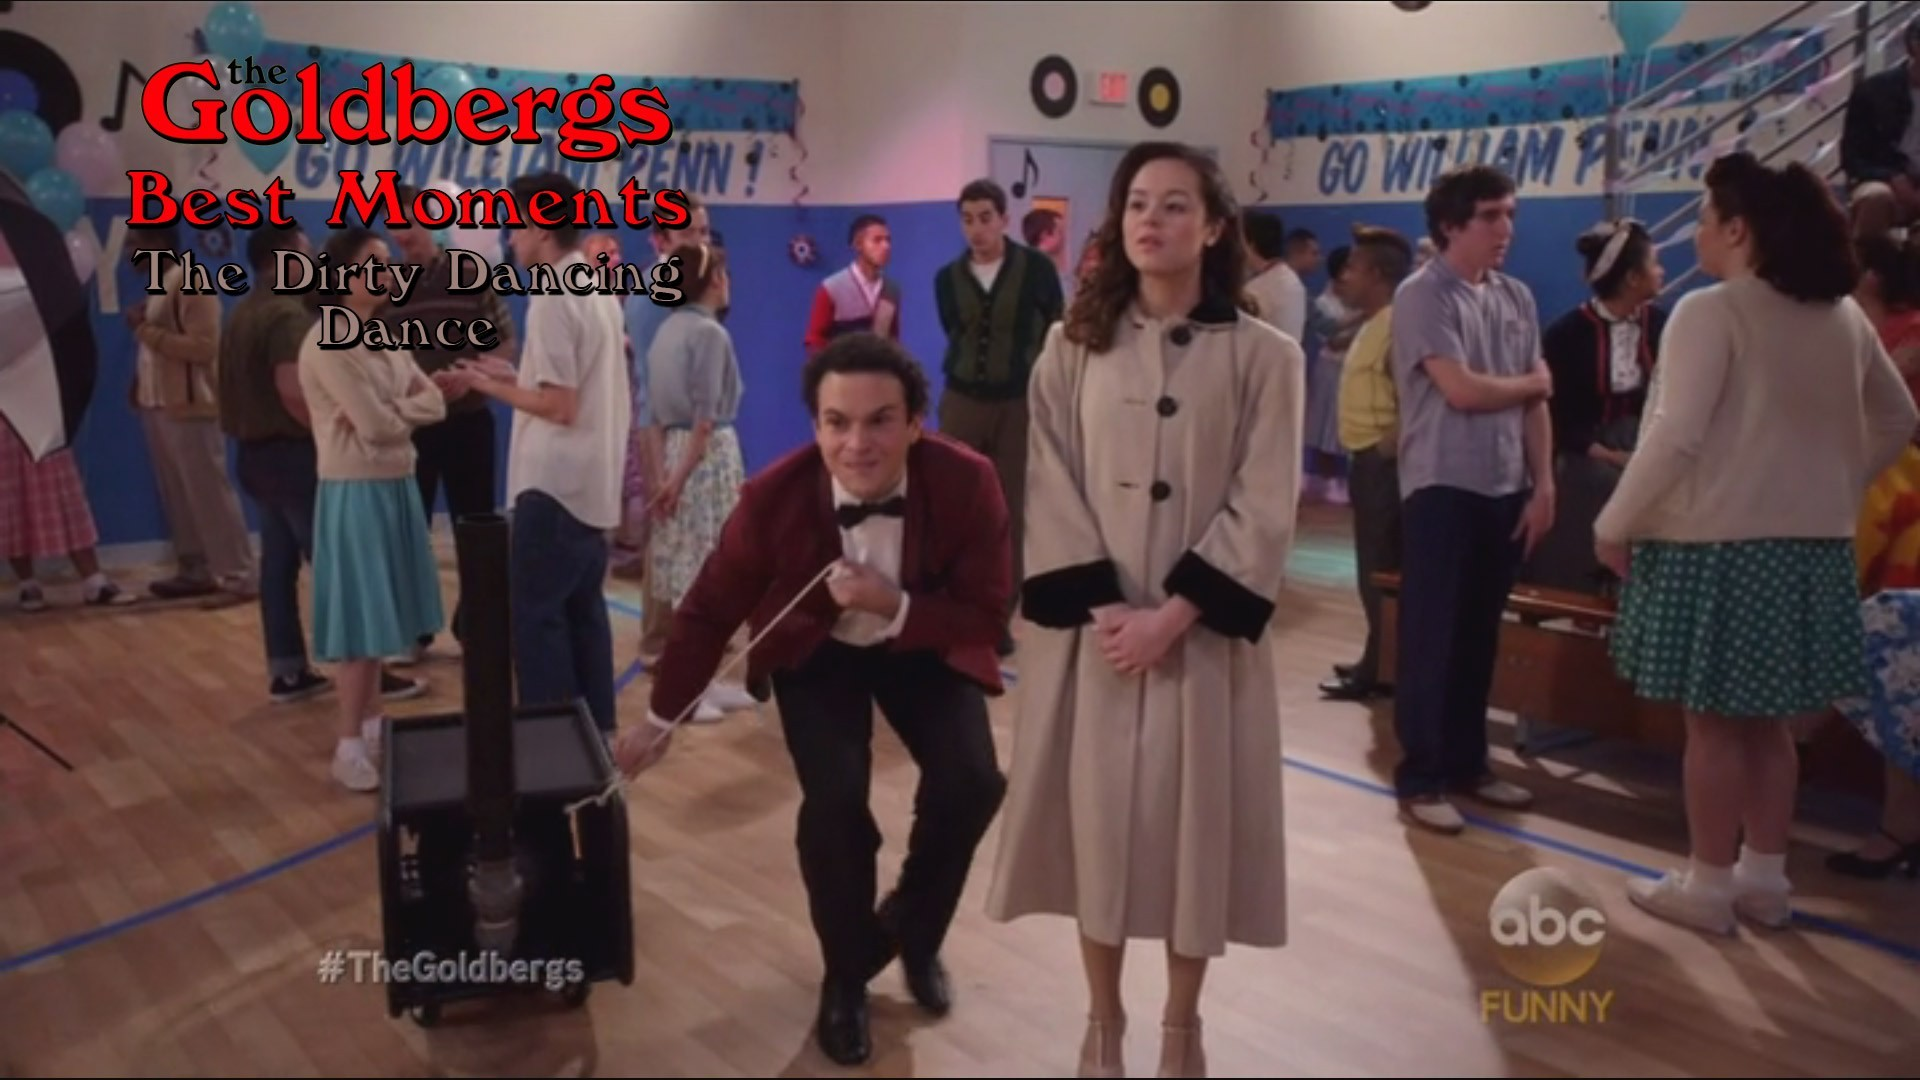 Res: 1920x1080, The Goldbergs Best Moments 'The Dirty Dancing Dance'